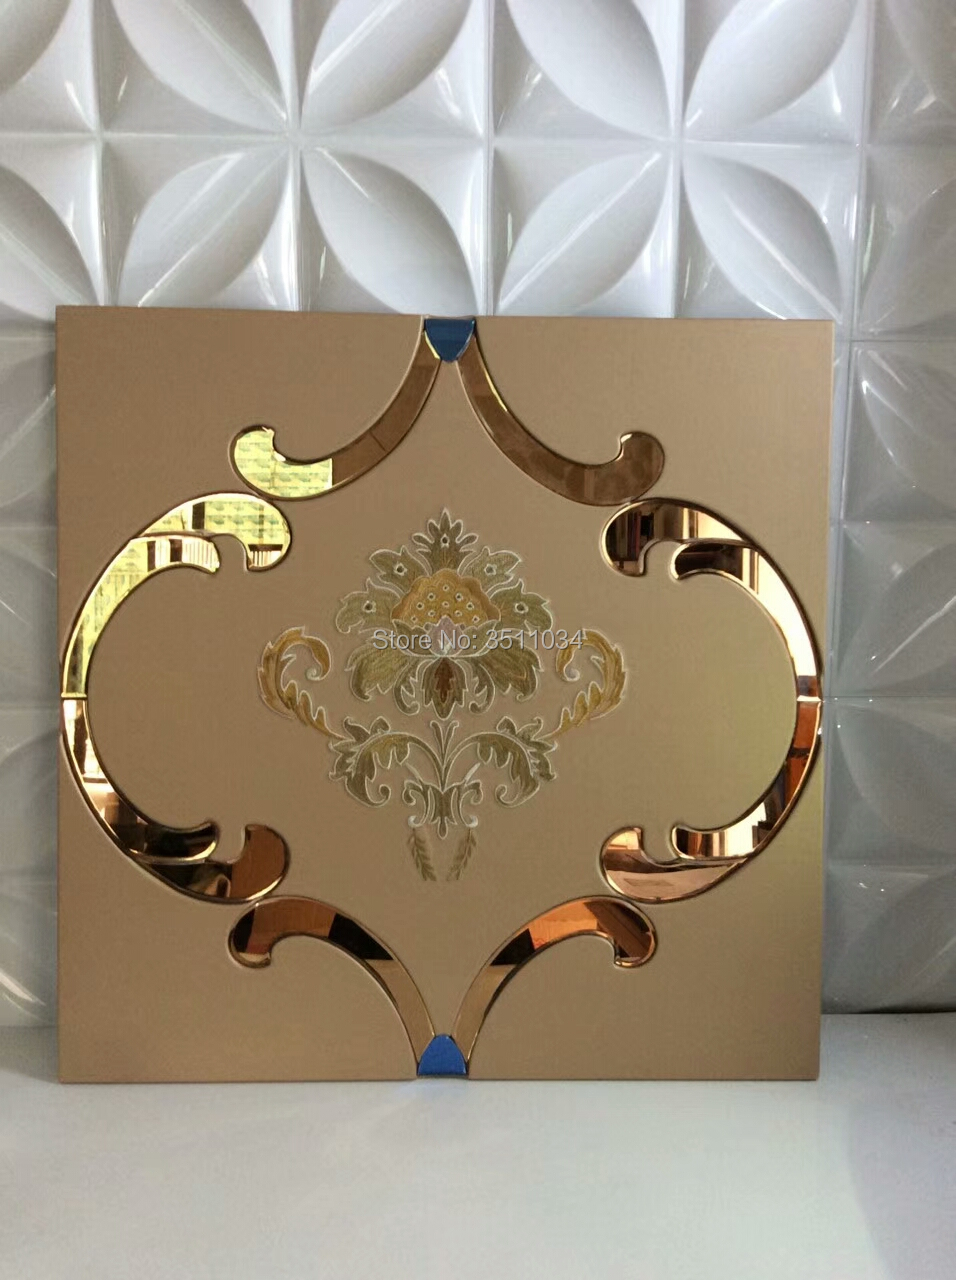 Embroidery Leather wall panel, Sound Asorption leather foam wall padding D 120 nightclub wall panels Leather carving panel